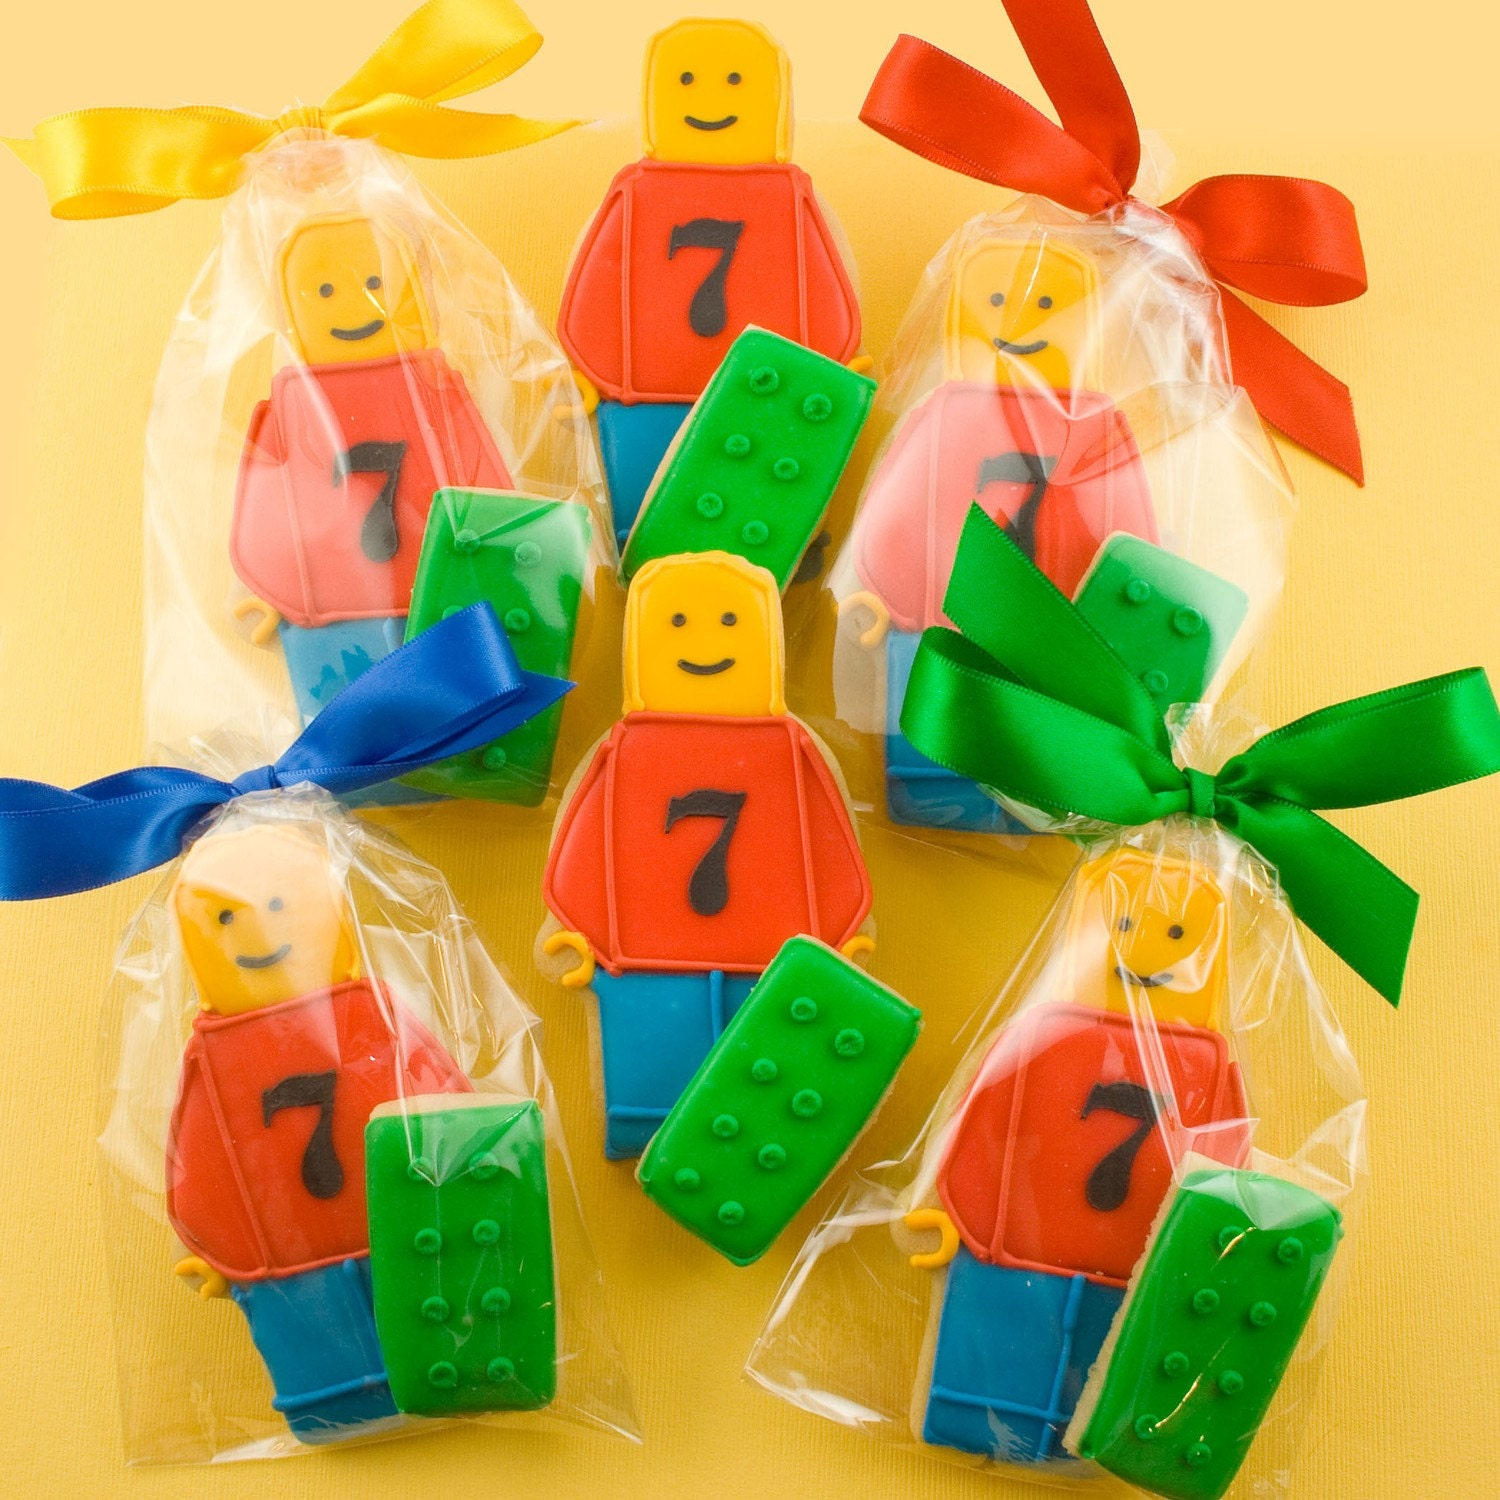 Lego Cookies Party Gift Sets 12 Lego Guys And 12 Lego